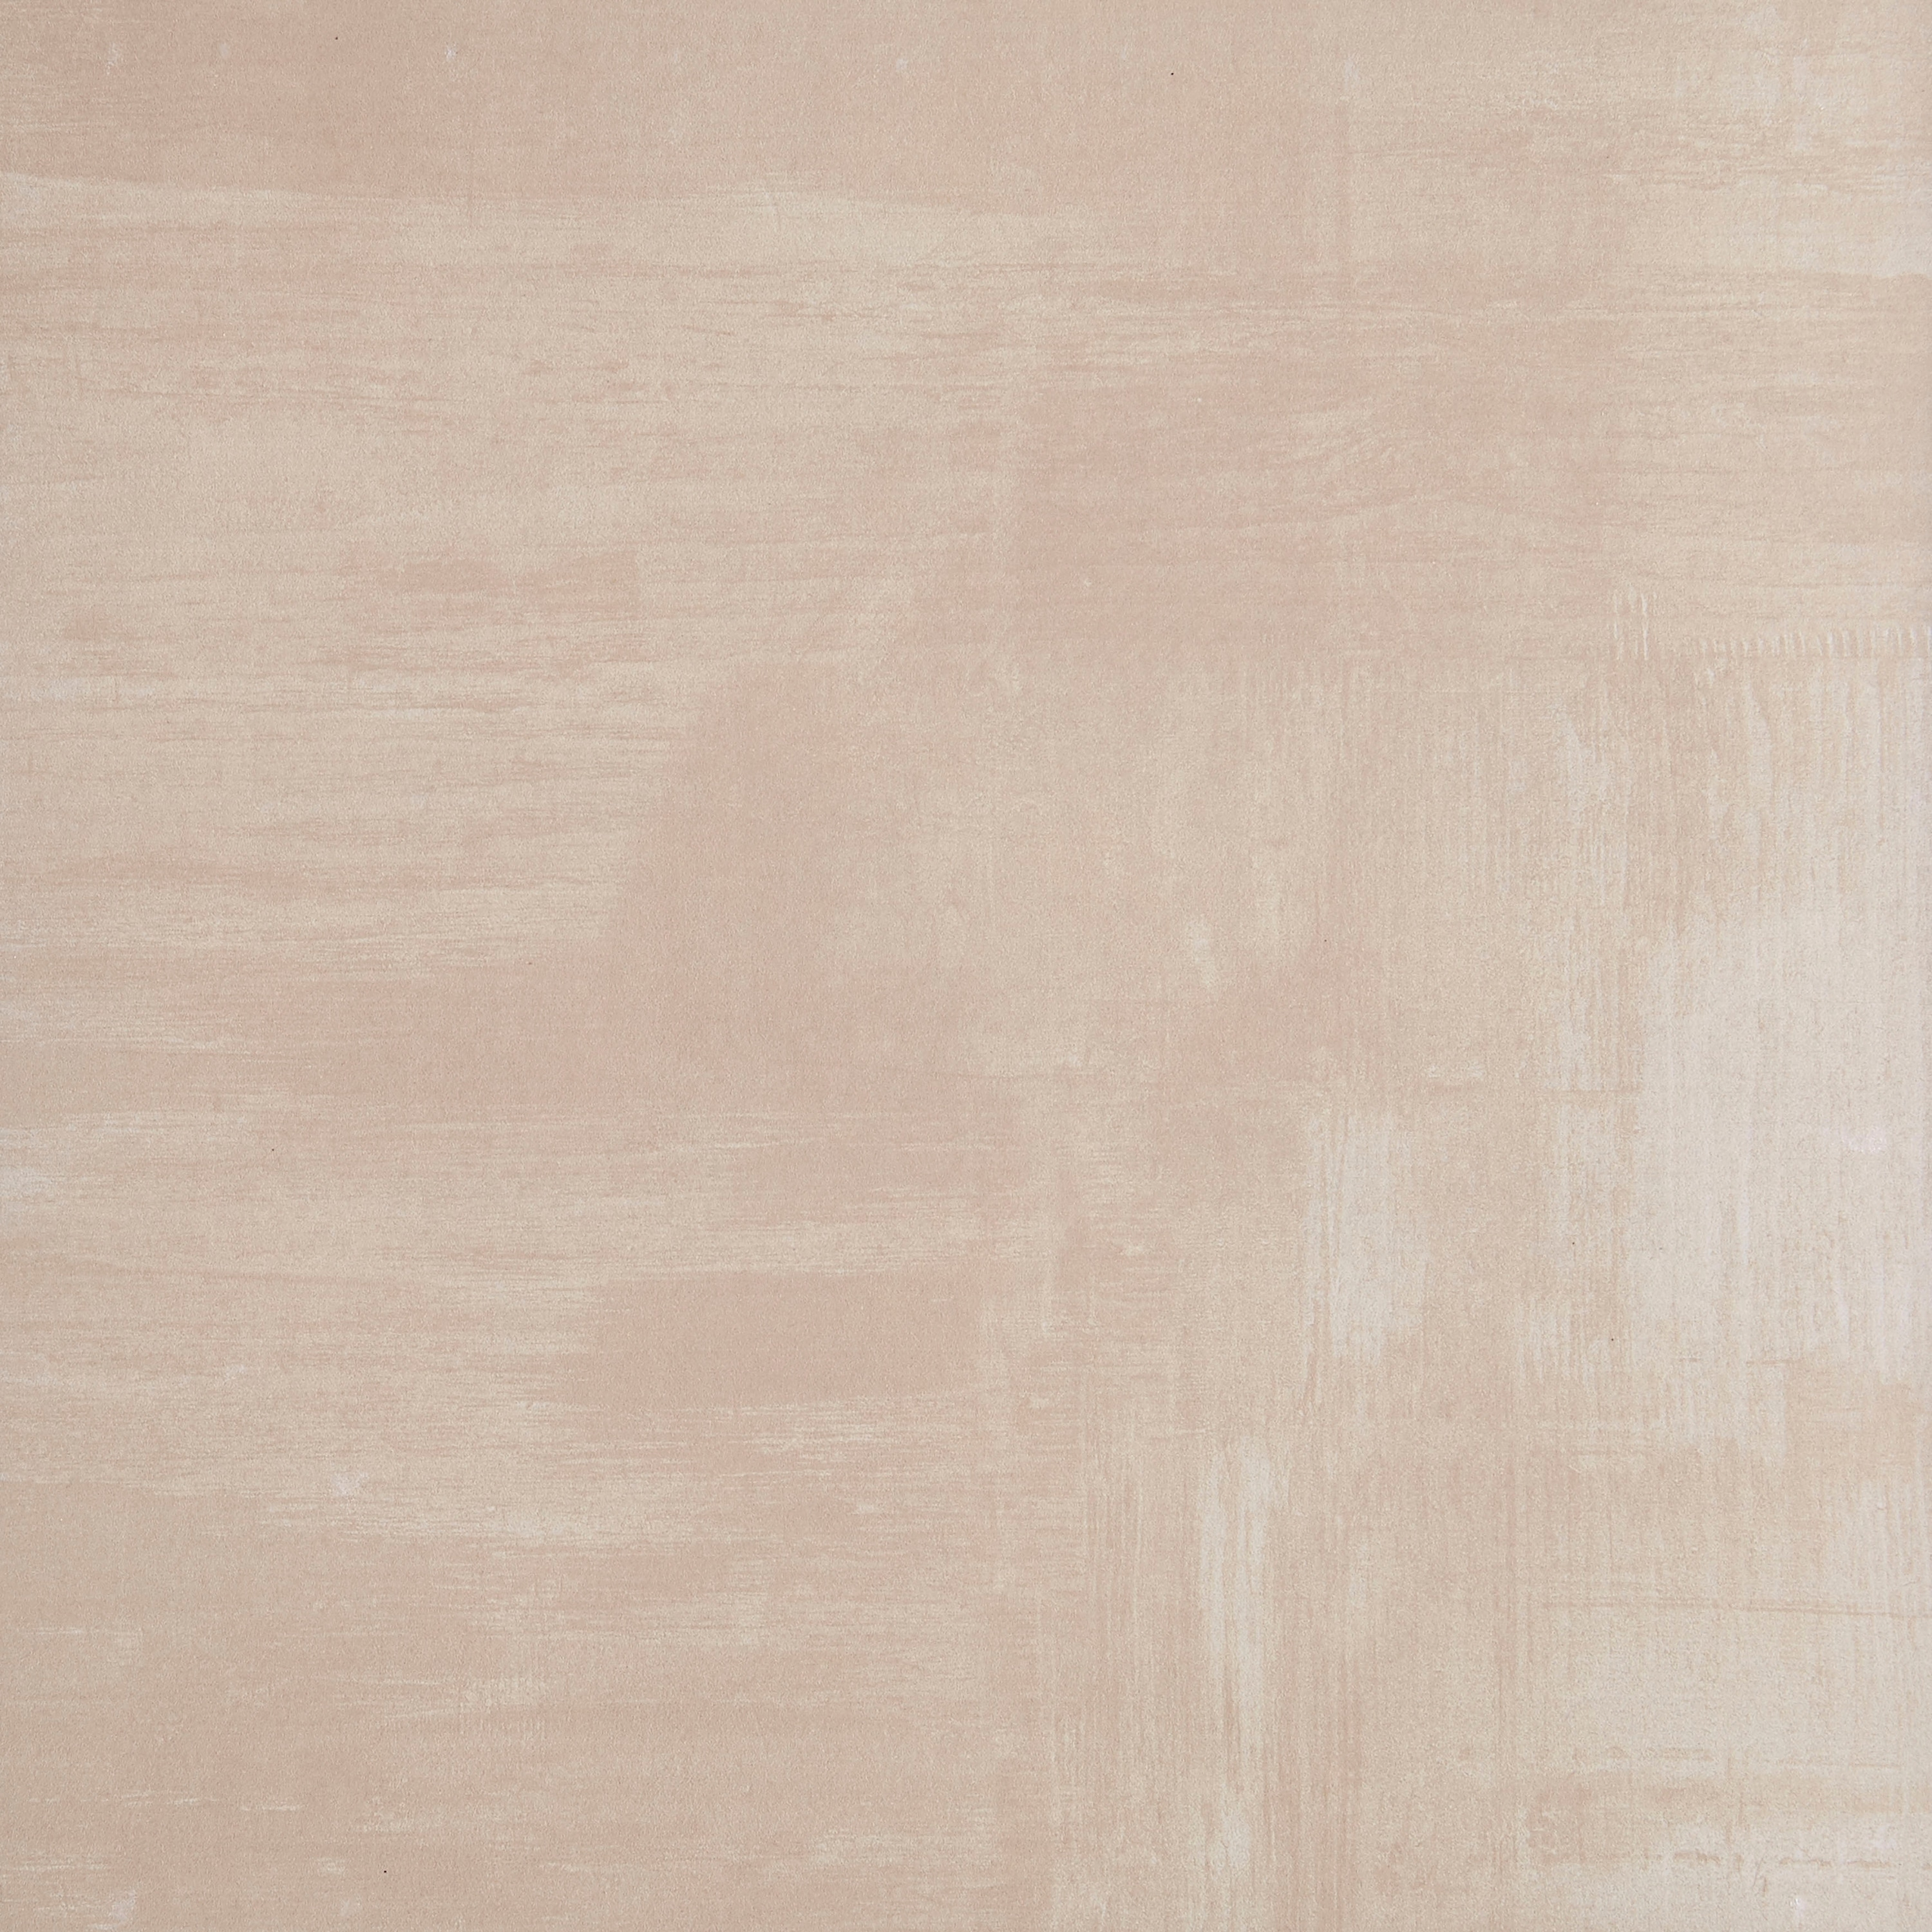 Shop Brushed Cement Visual 18x18 Inch Glazed Ceramic Floor Tile In